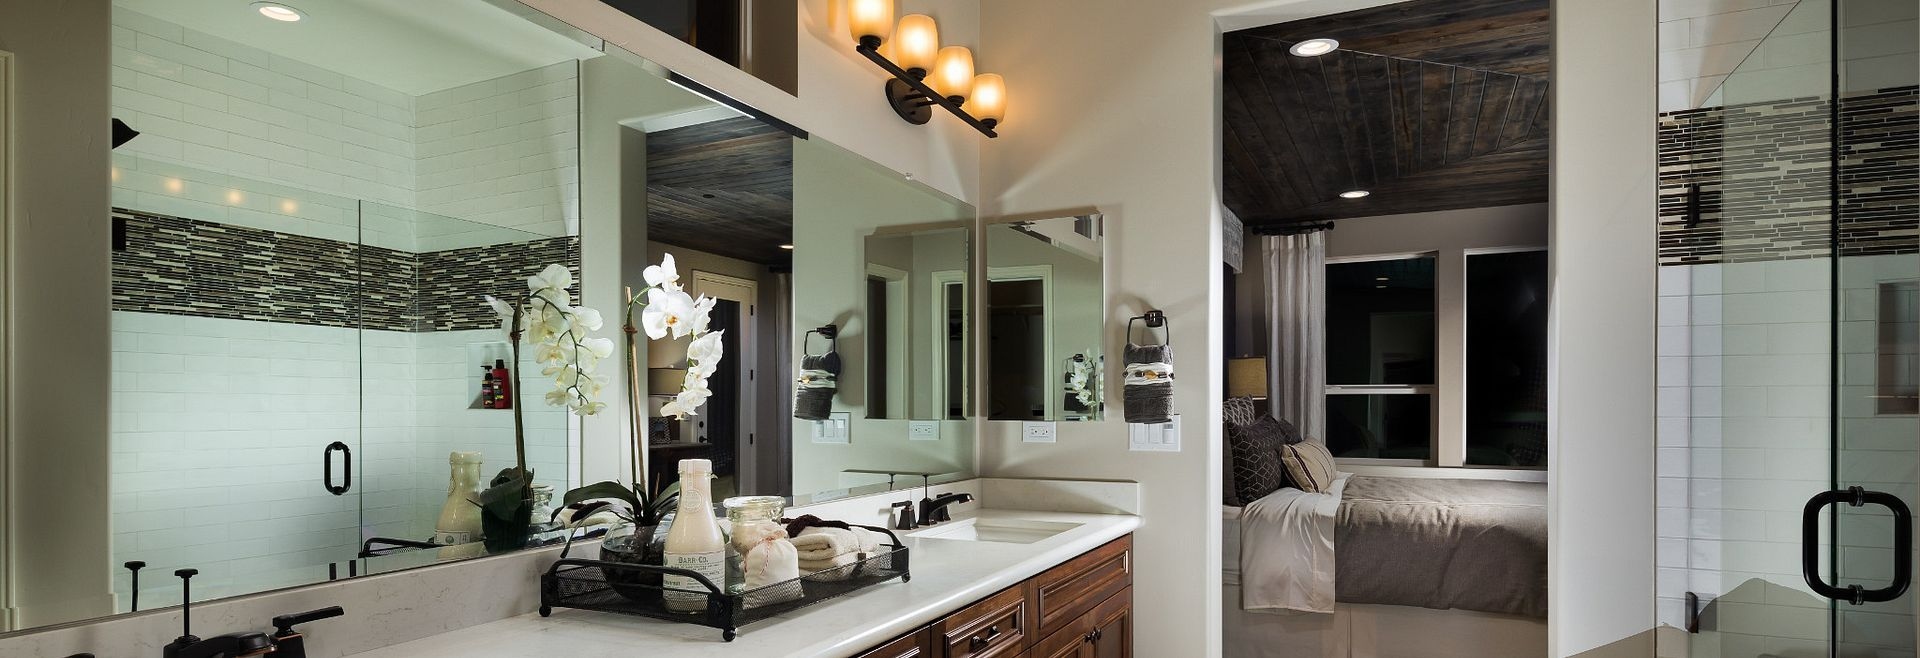 Bathroom featured in the Monterey By Shea Homes - Trilogy in San Luis Obispo, CA